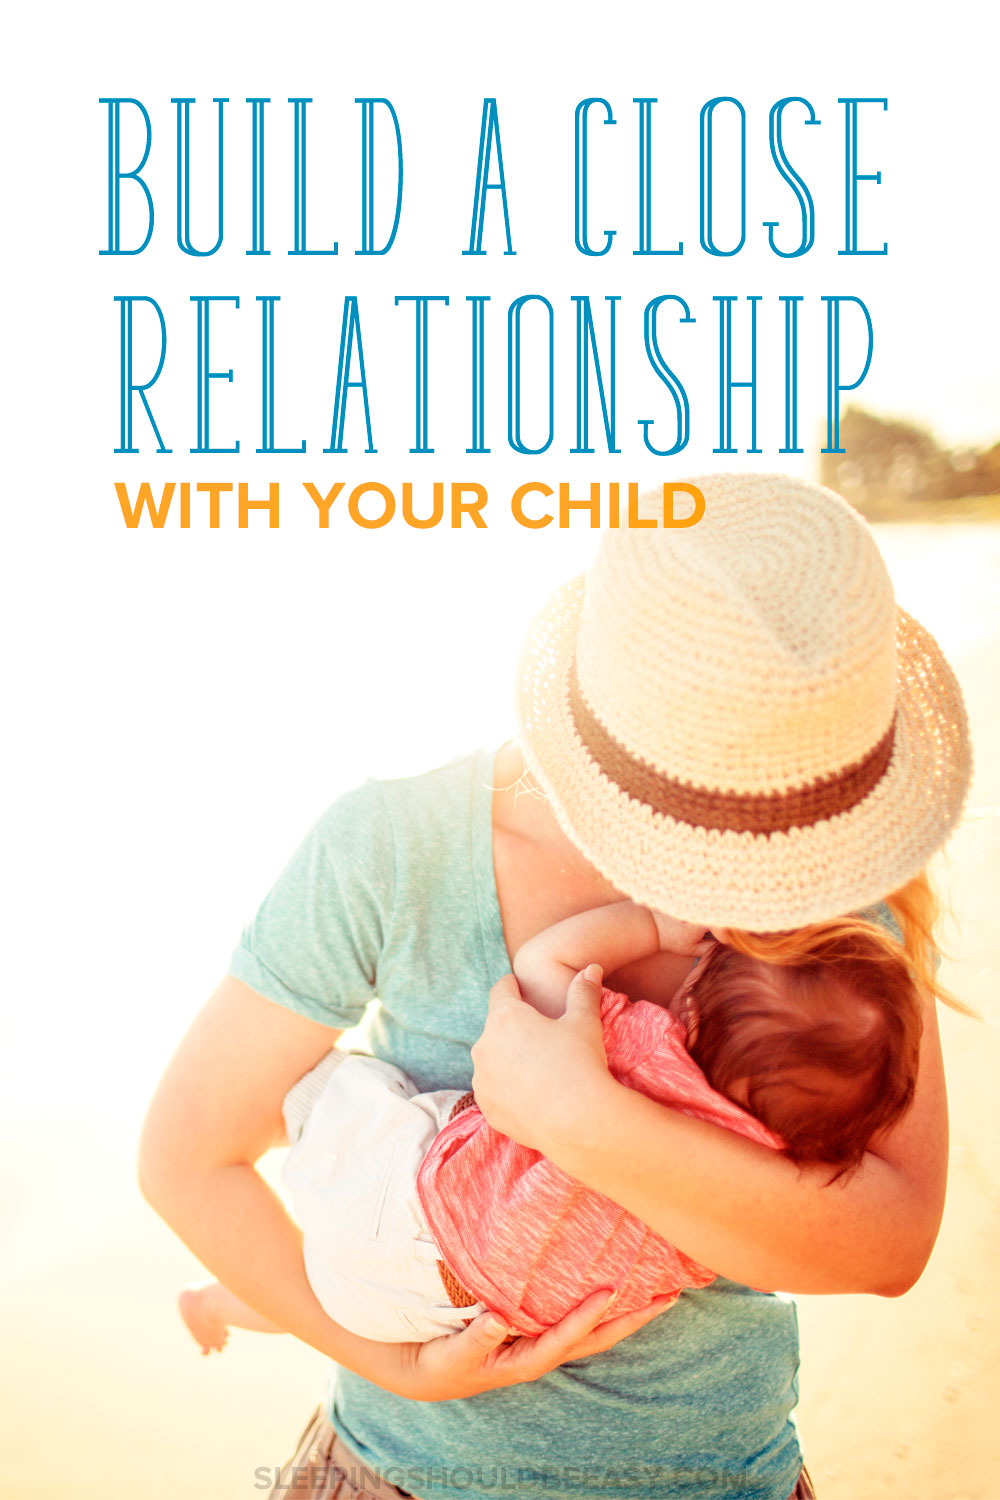 One of my goals is to remain close to my kids well into their adulthood. Here's how to build a close relationship with your child, starting now.